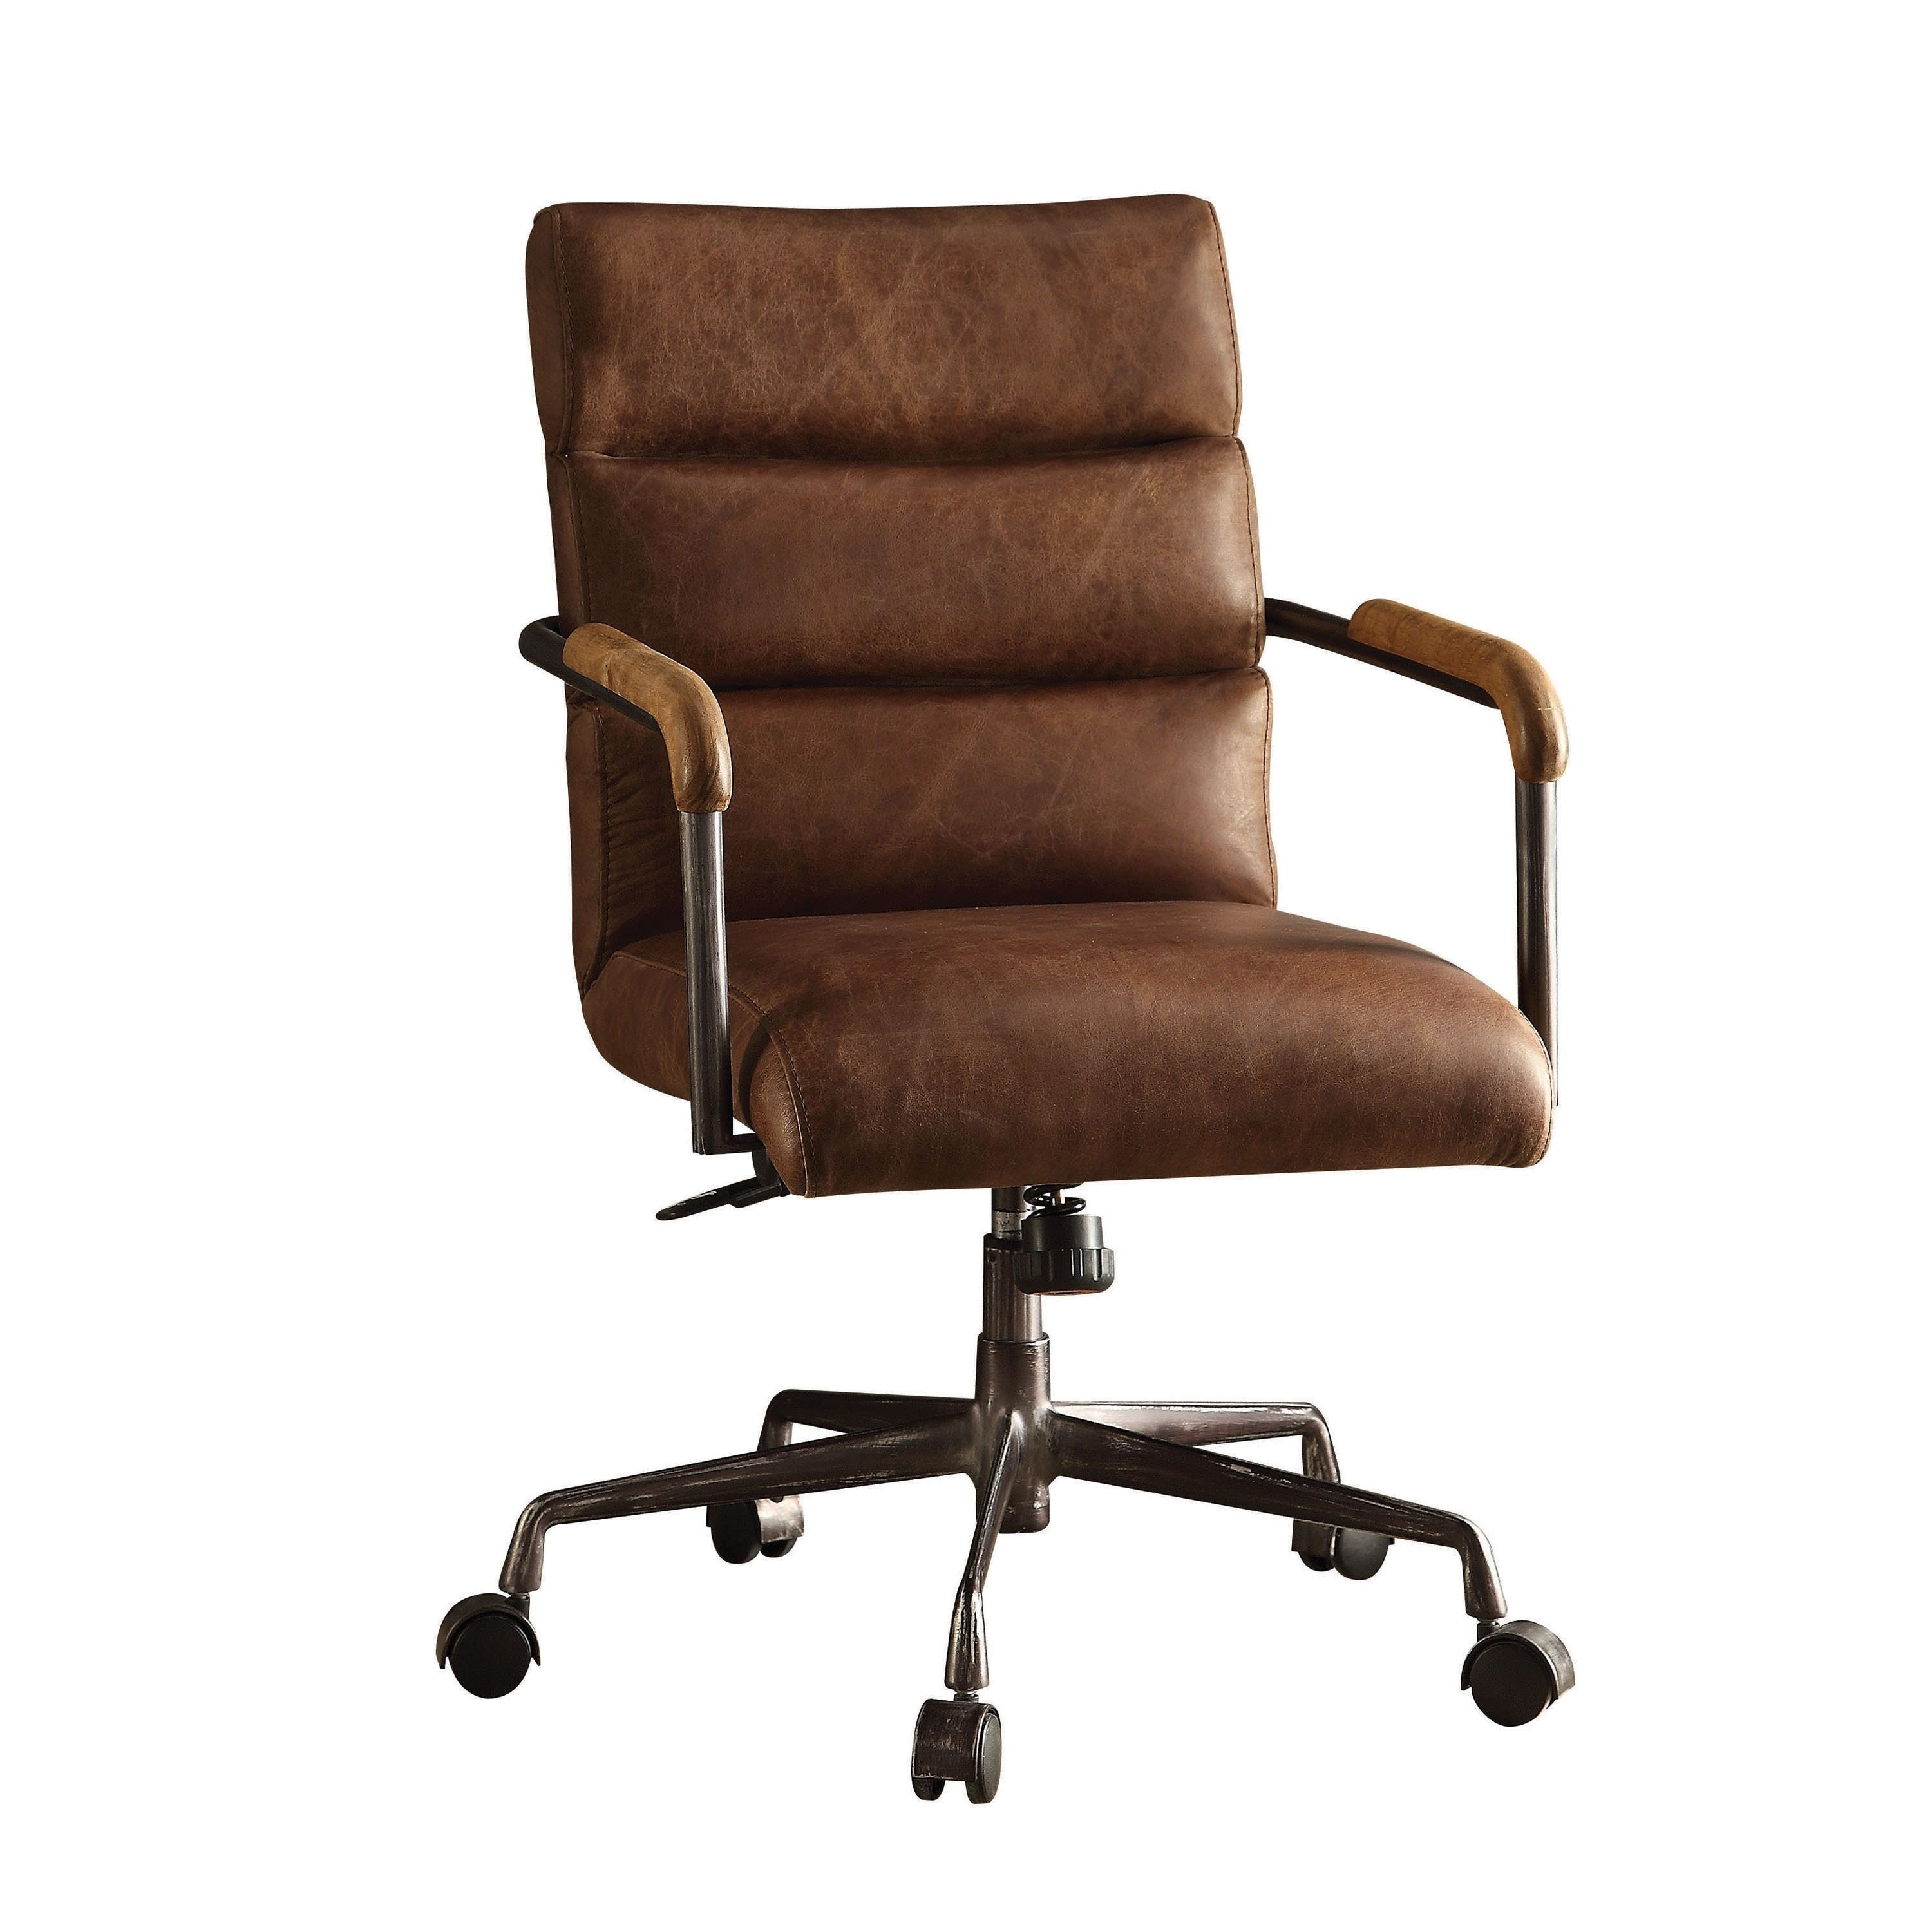 Acme harith executive office chair retro top grain